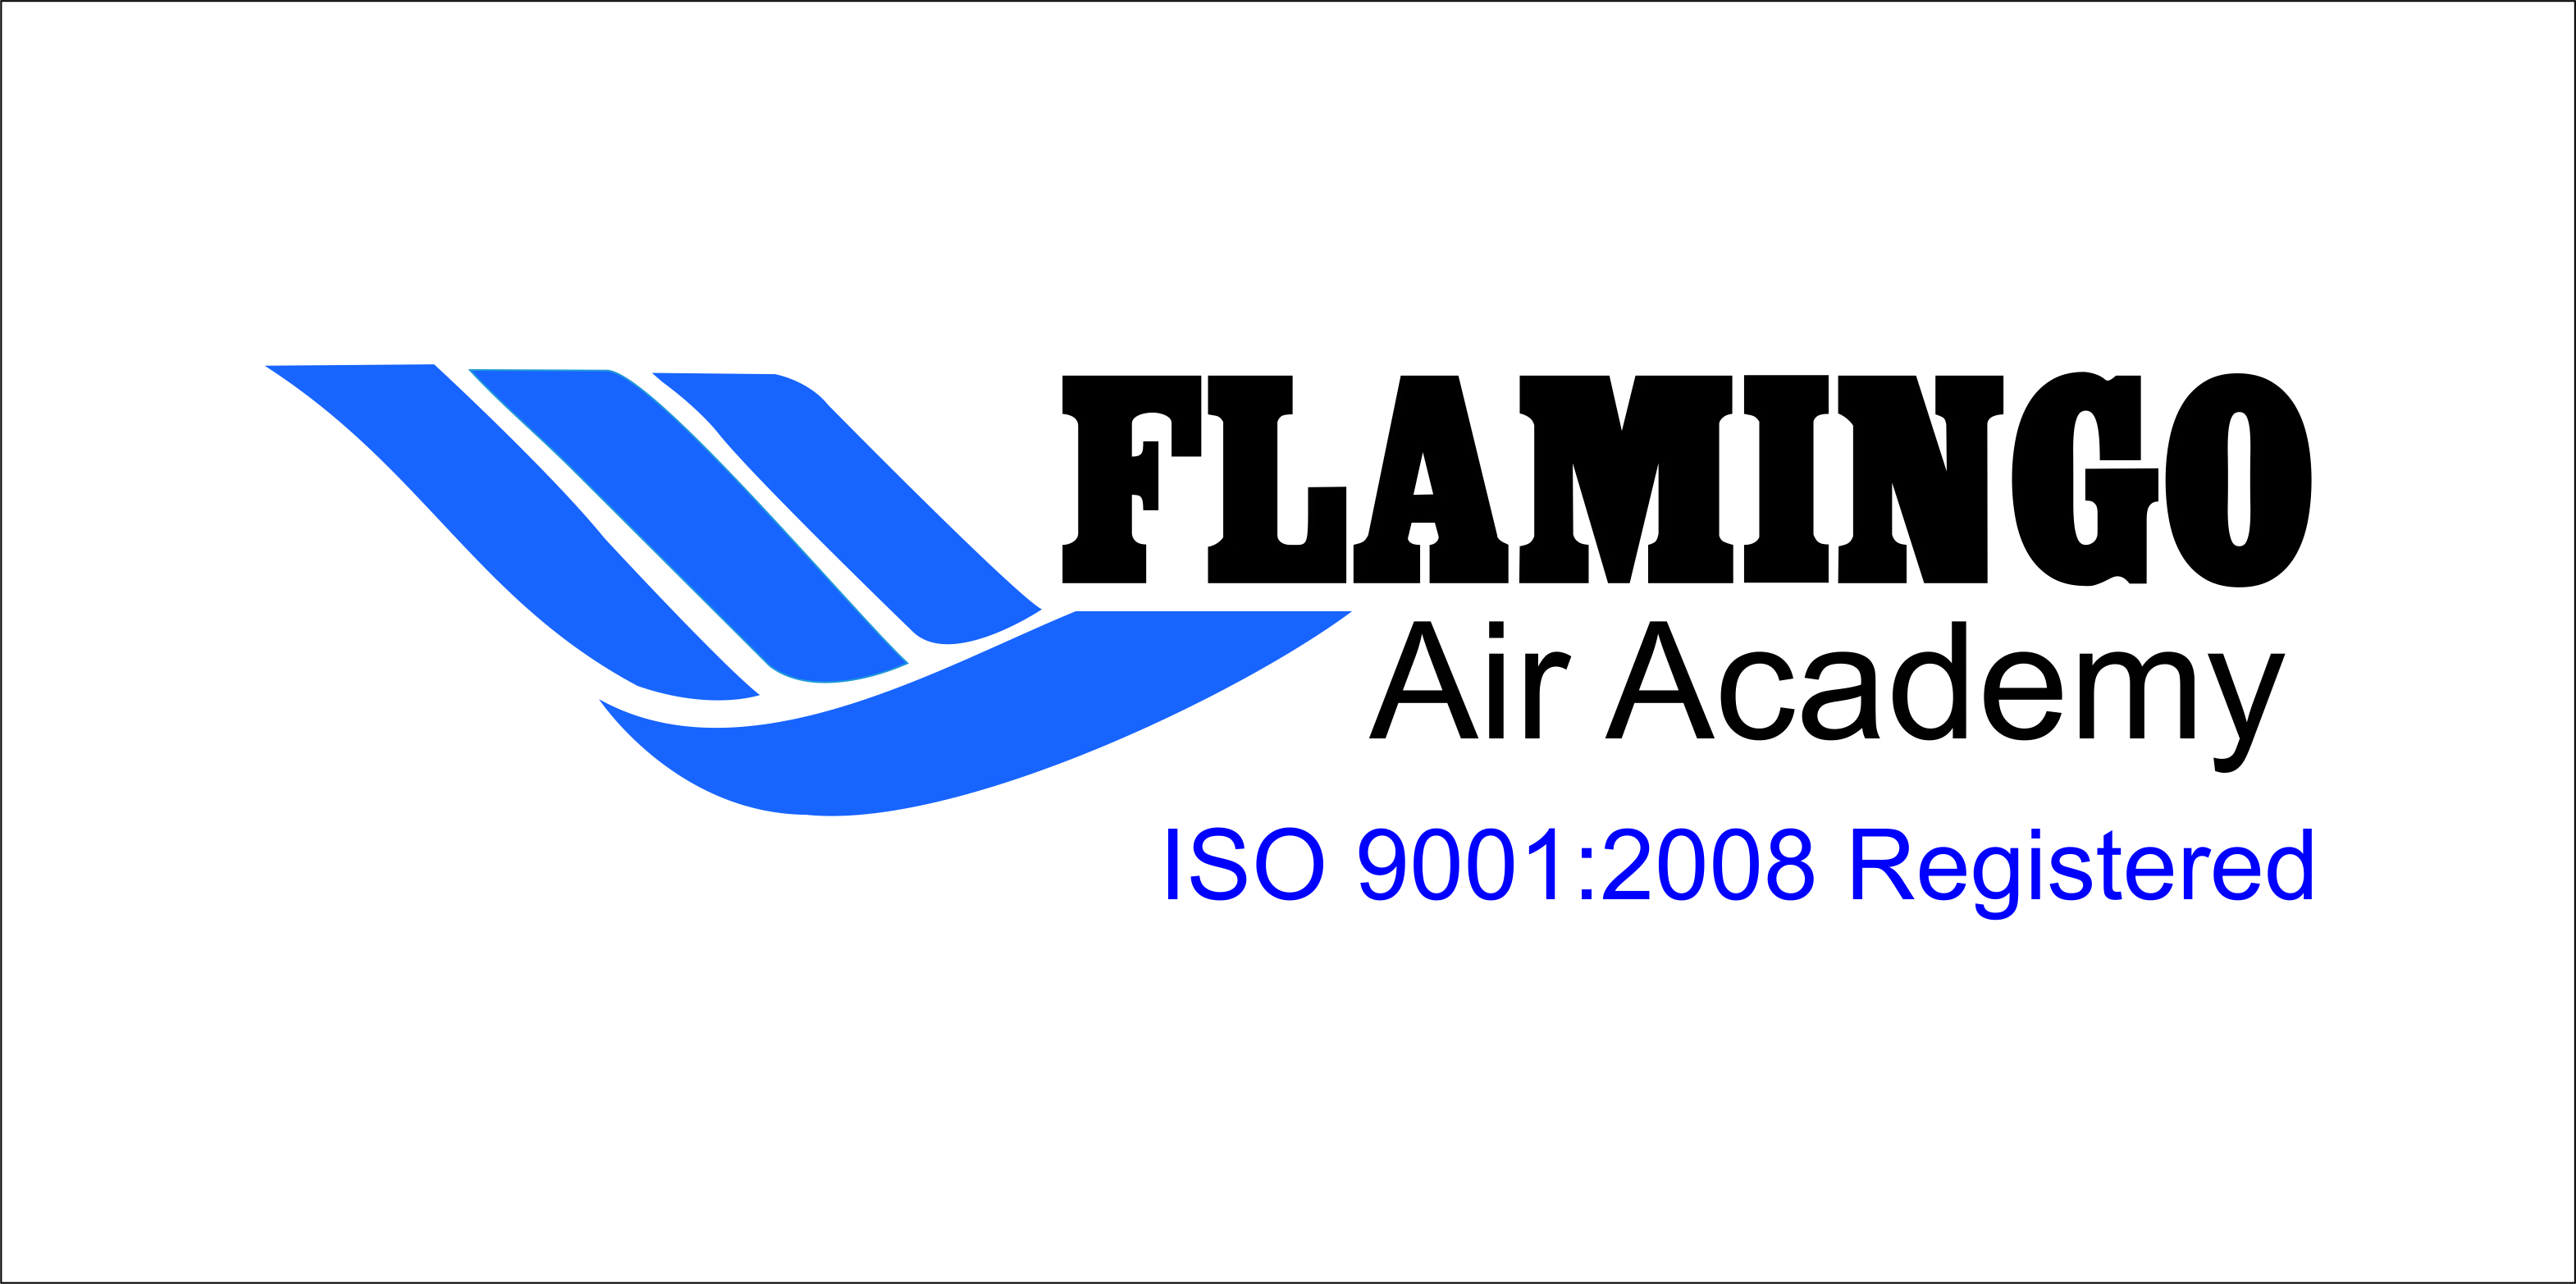 Flamingo Air Academy